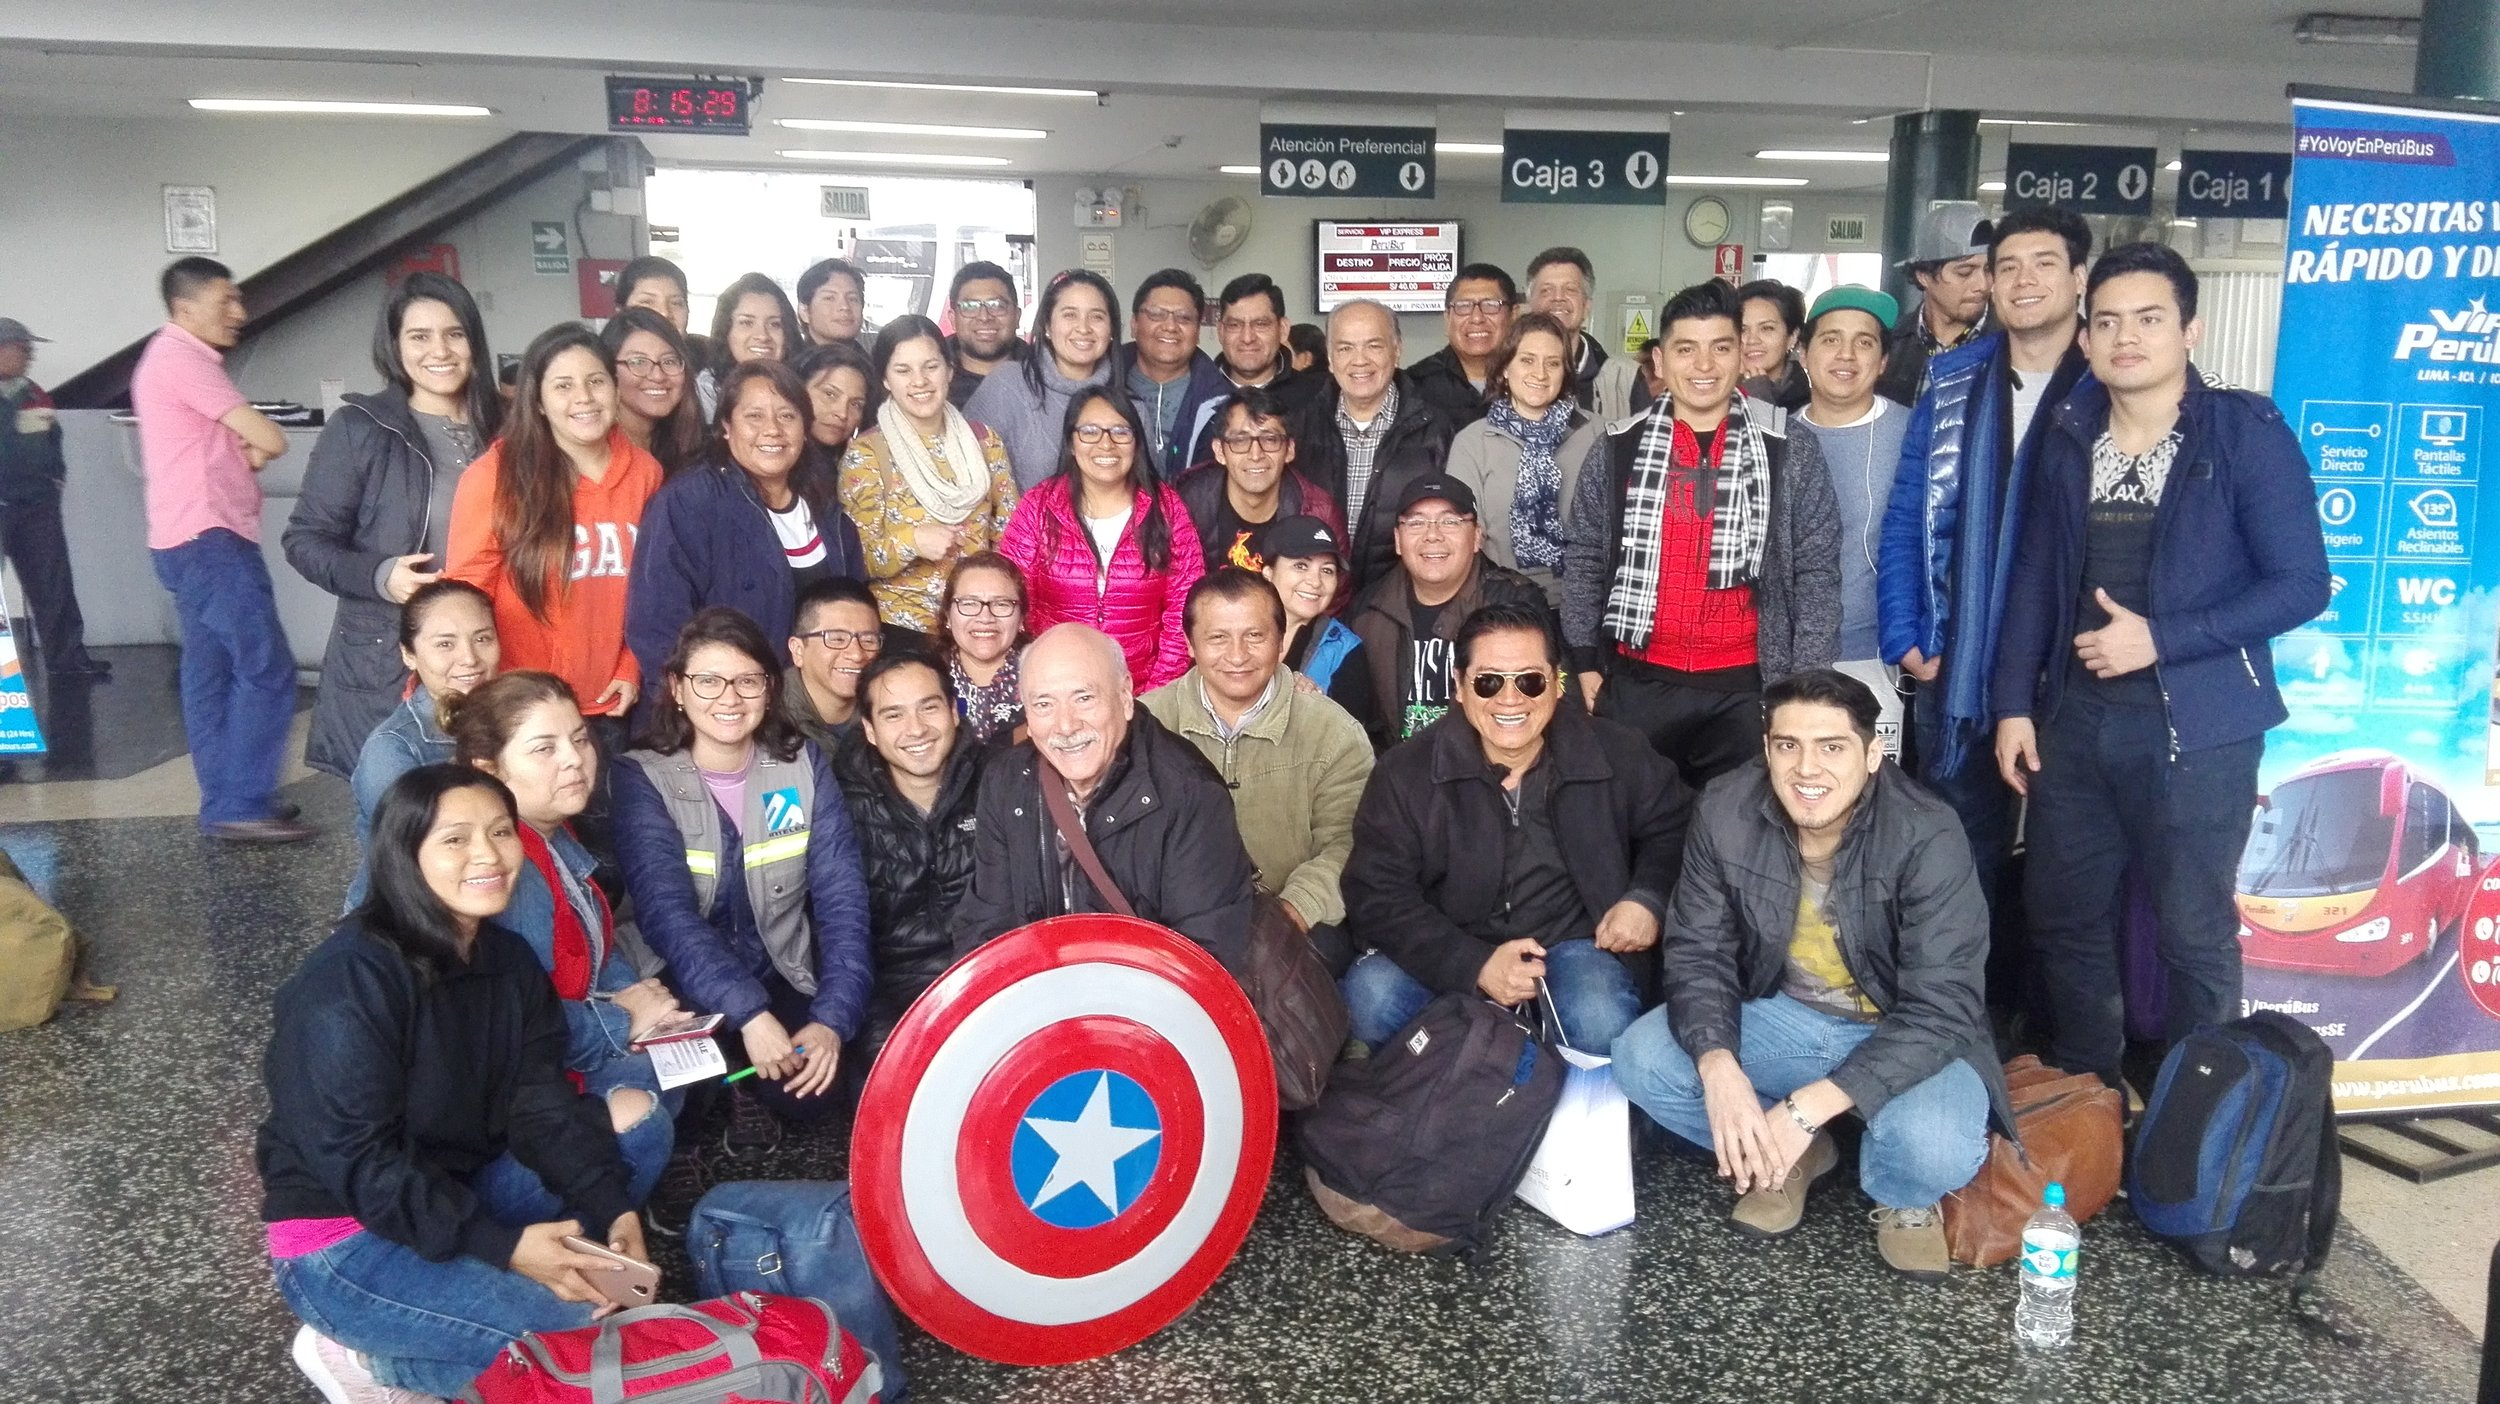 SoPA volunteers prepare to depart for the Andes to fulfill our 2018 mission goals.